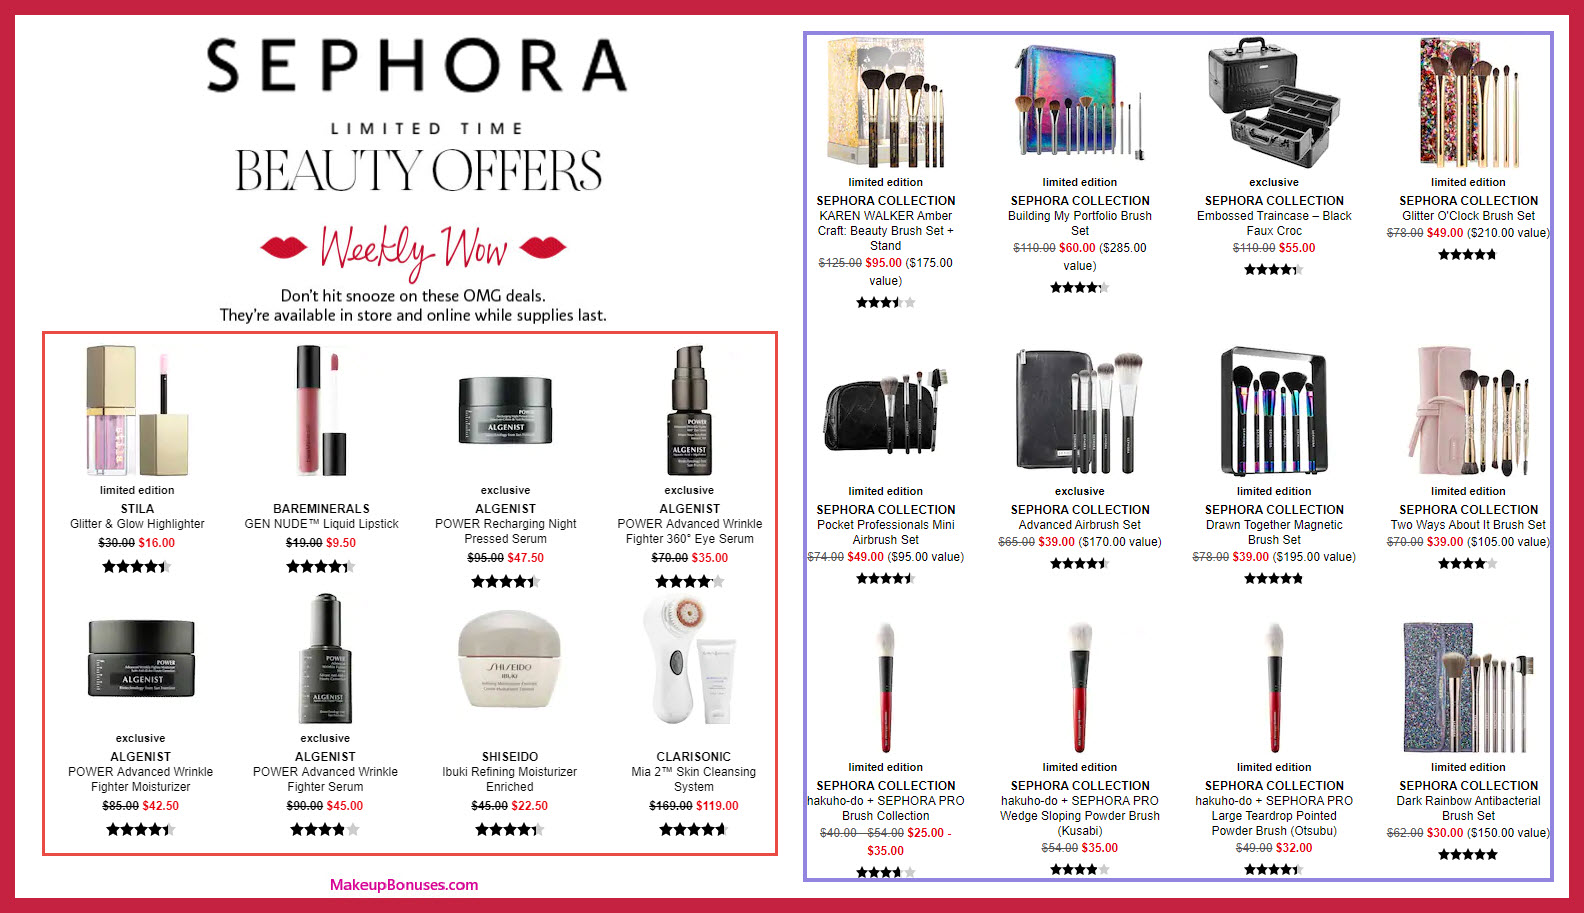 Sephora Discount Offers - MakeupBonuses.com